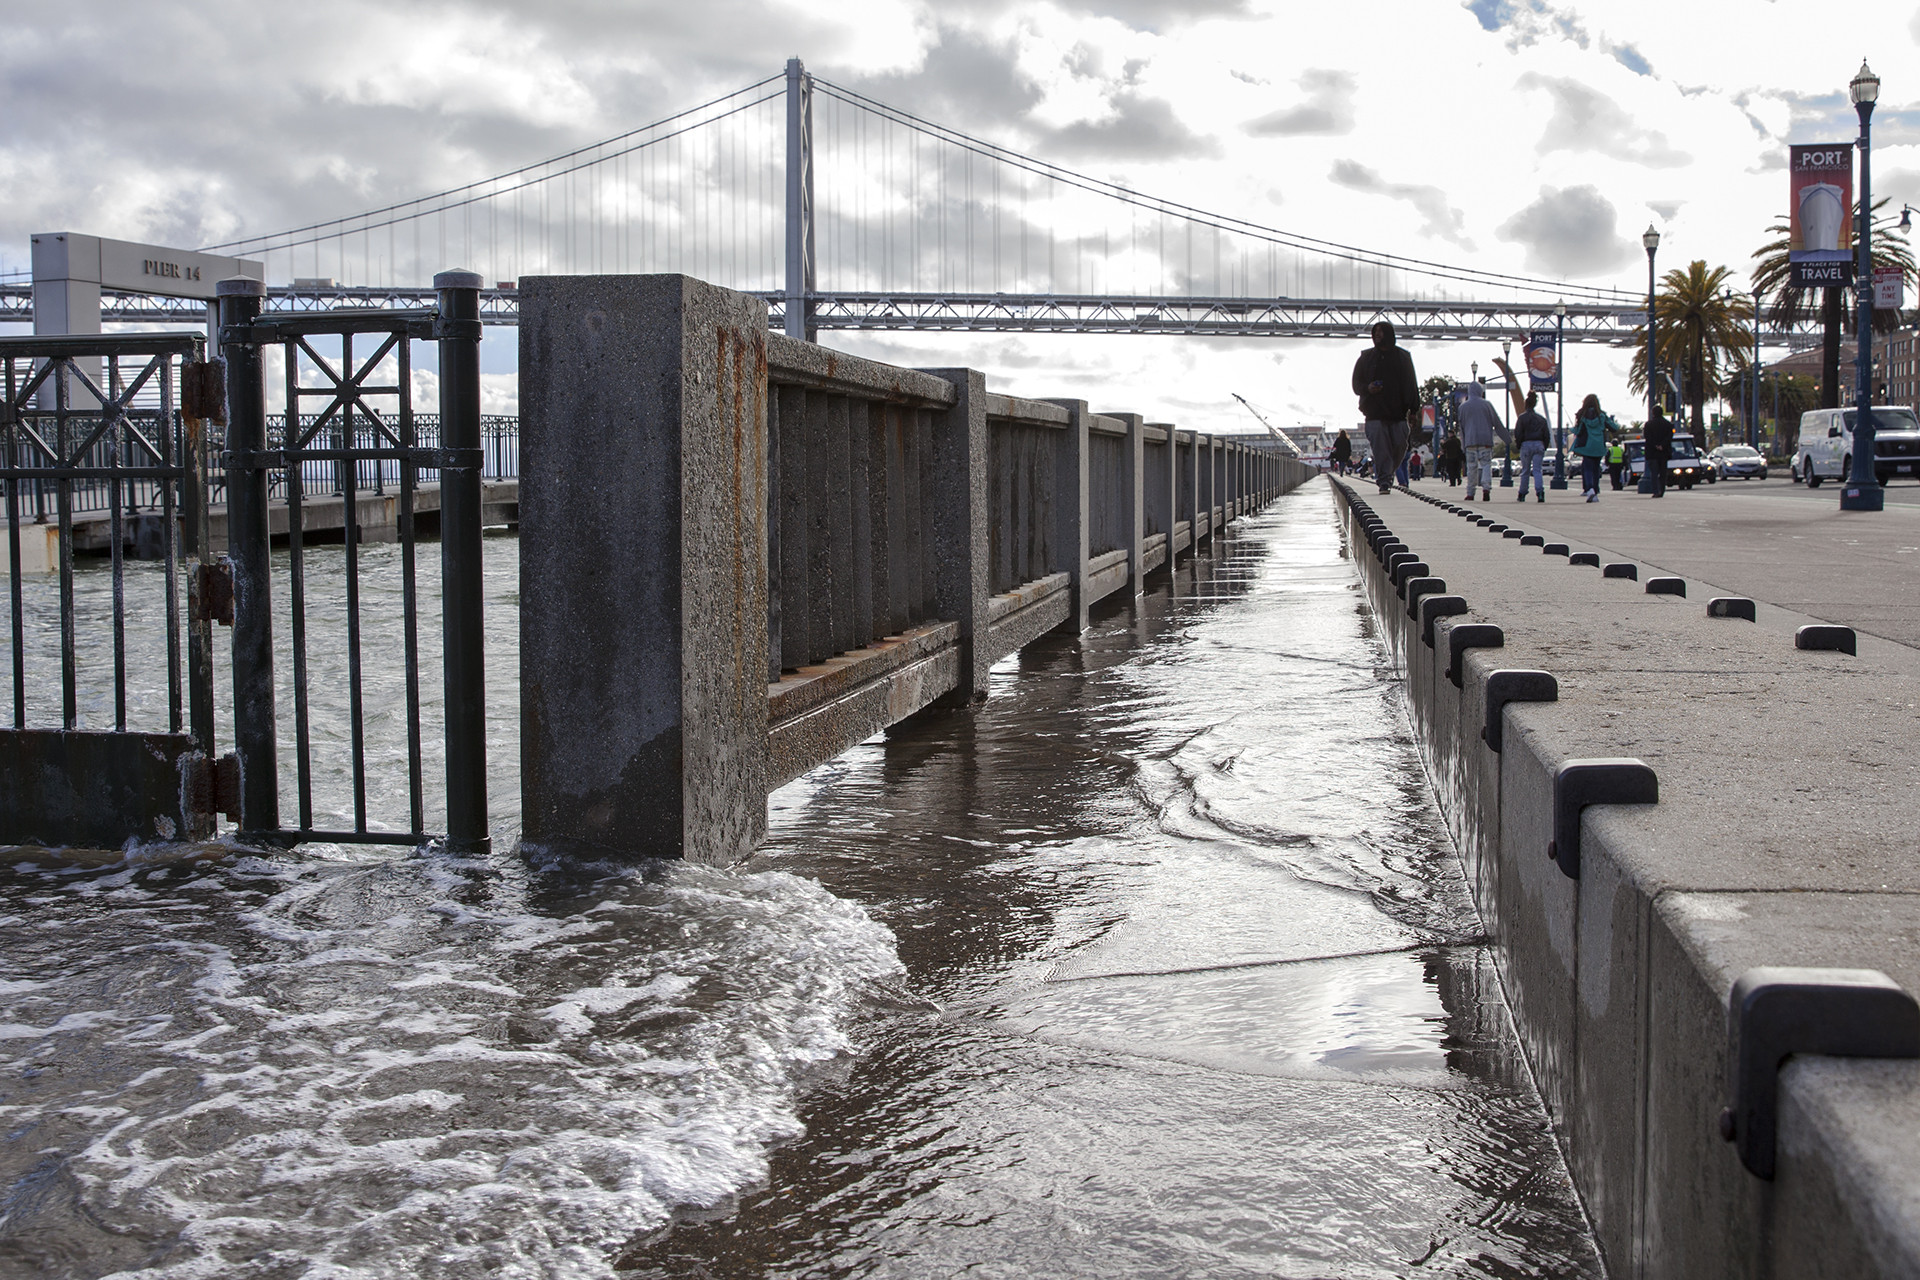 Walkways along Pier 14 at the San Francisco Embarcadero begin to flood during the high point of a king tide on January 11, 2017.